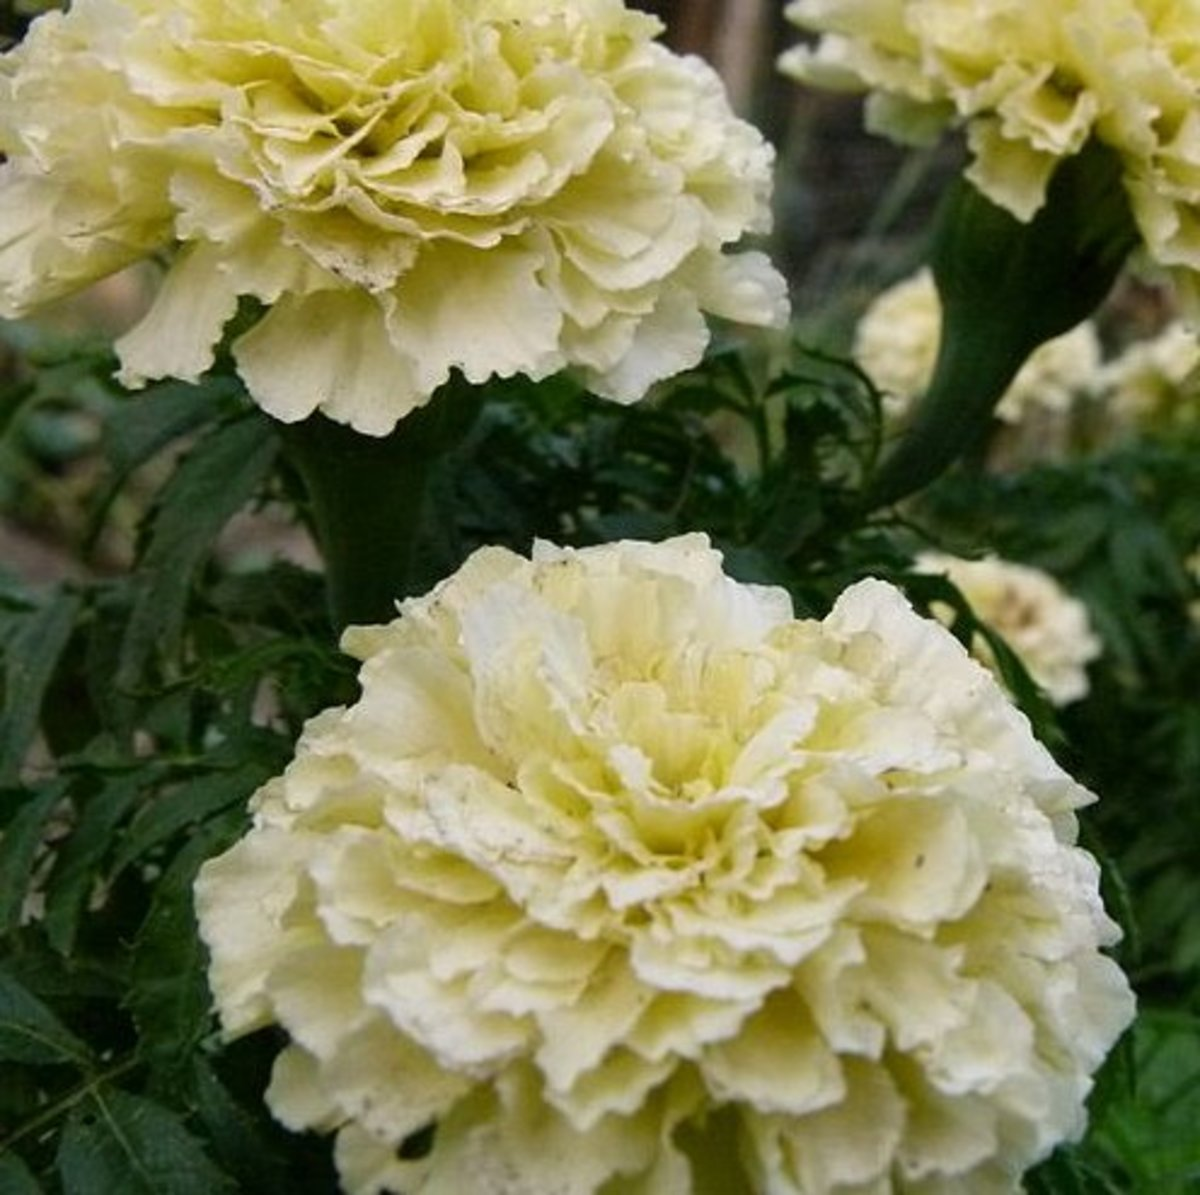 Marigolds are loved by gardeners world wide. Pictured: a white marigold growing in India.